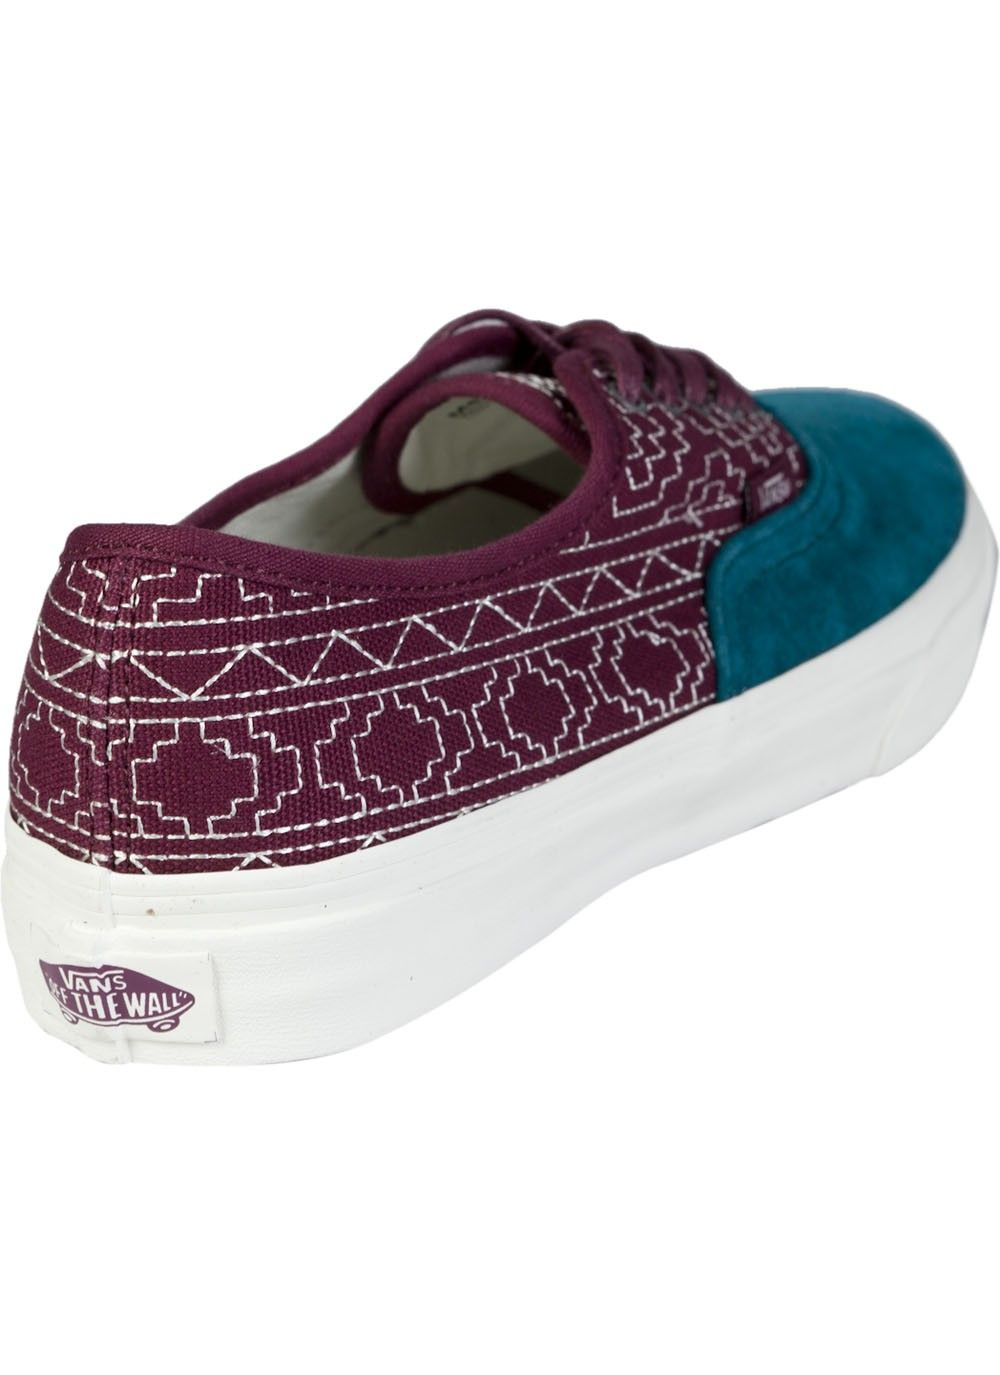 a3b4da7aa3 Vans Authentic Slim California Native Embroidery Burgundy